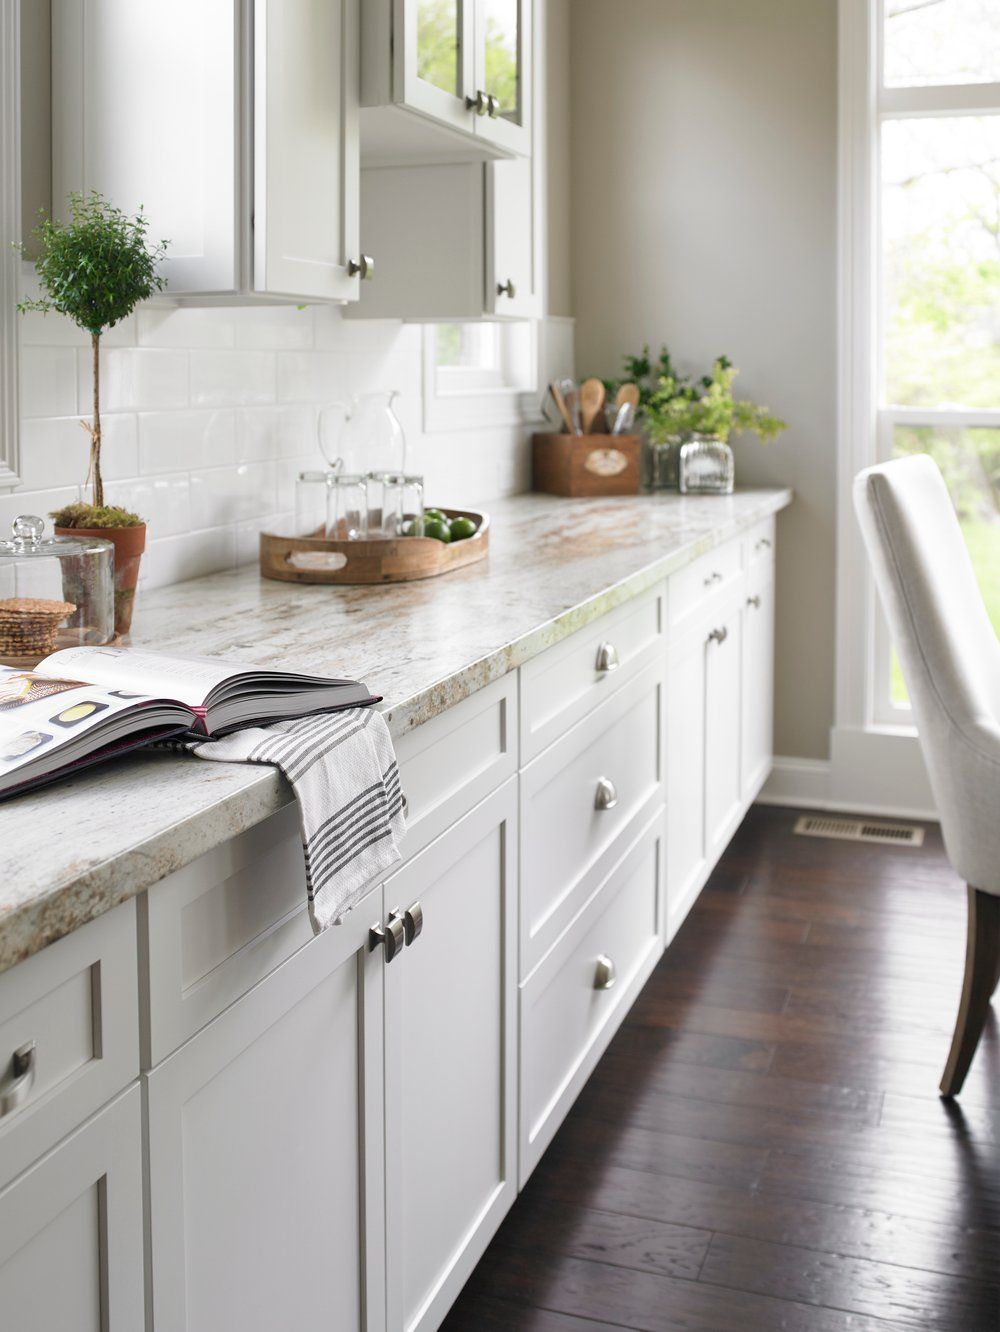 Neutral Countertops And White Cabinetry Make For A Calming